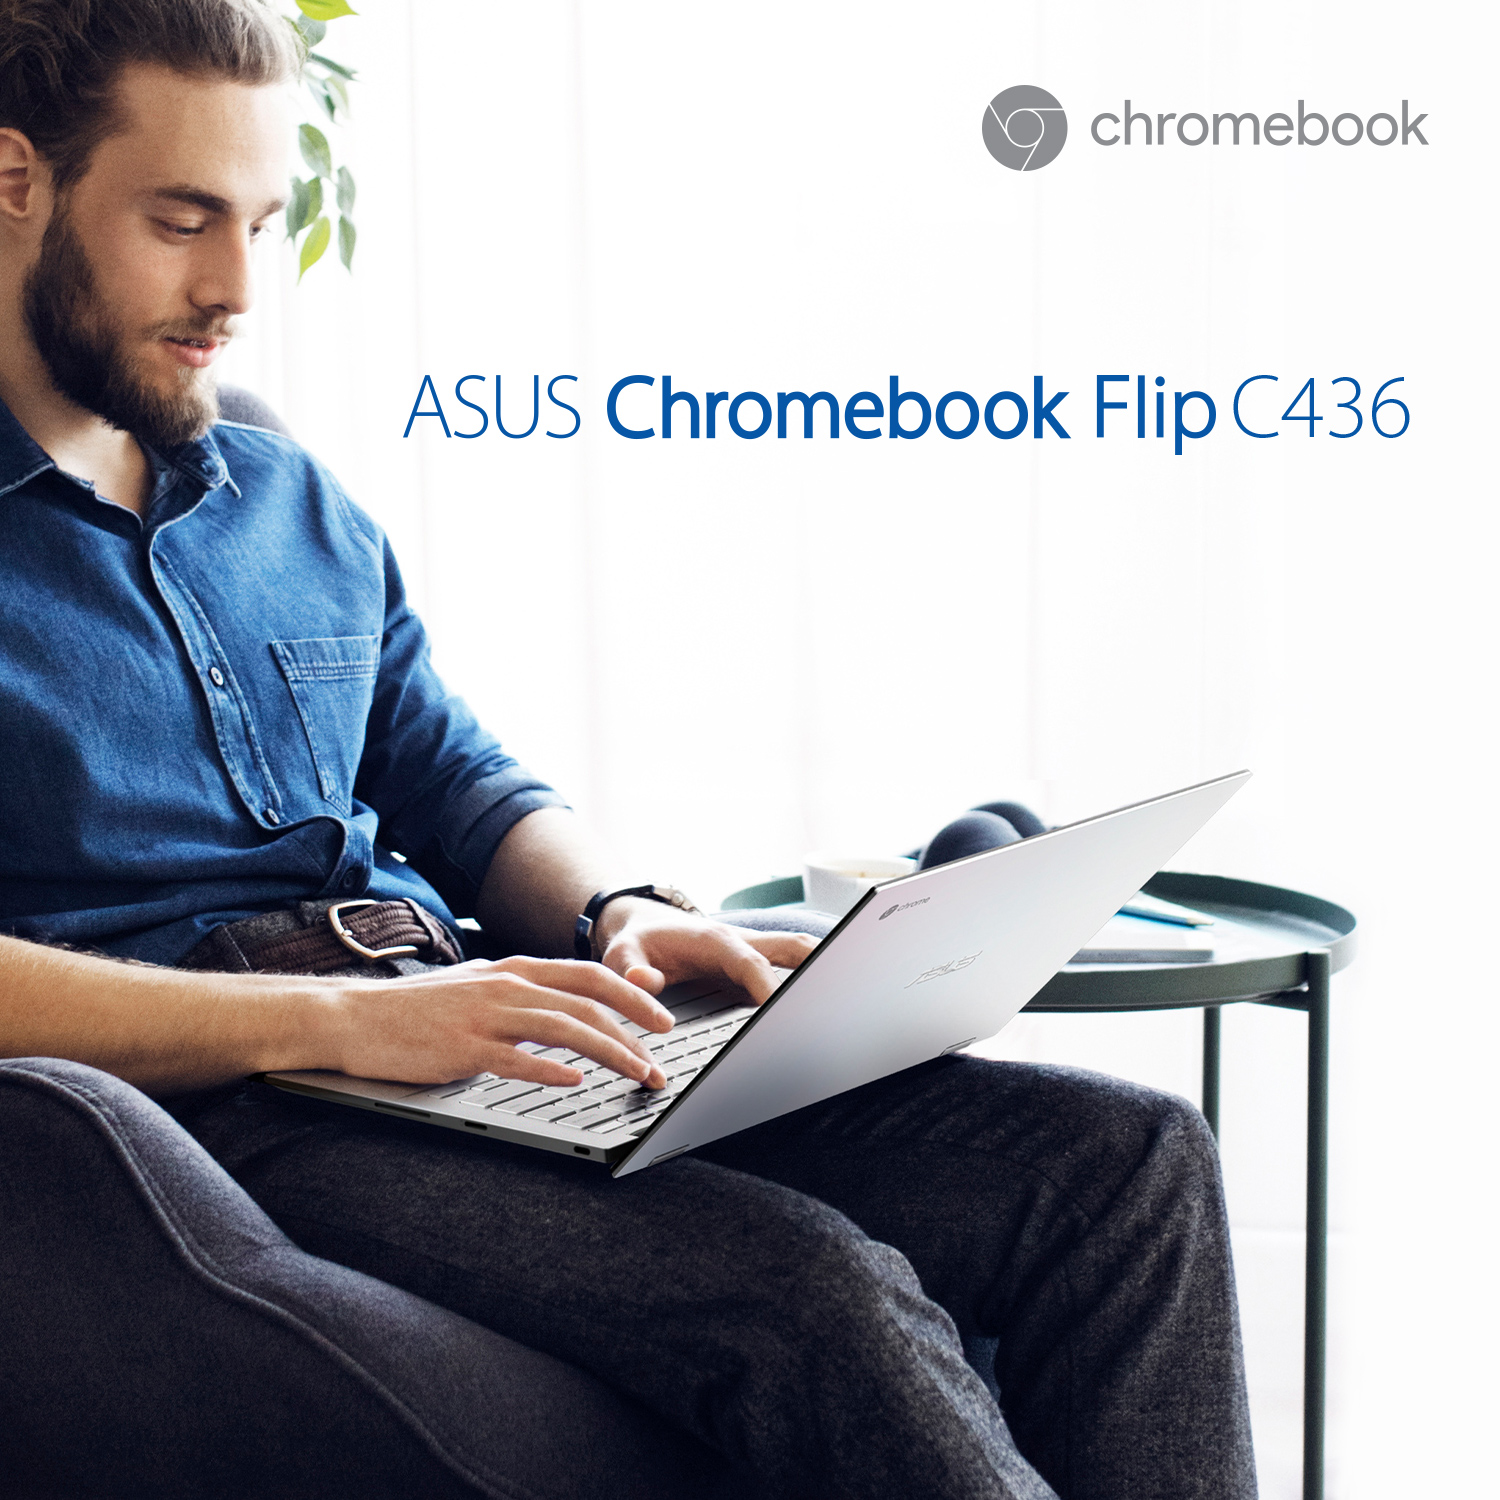 1500x1500 ChromebookFlip 436 scenario 12 p - Be ready for the workplace of tomorrow with ASUSExpert Series